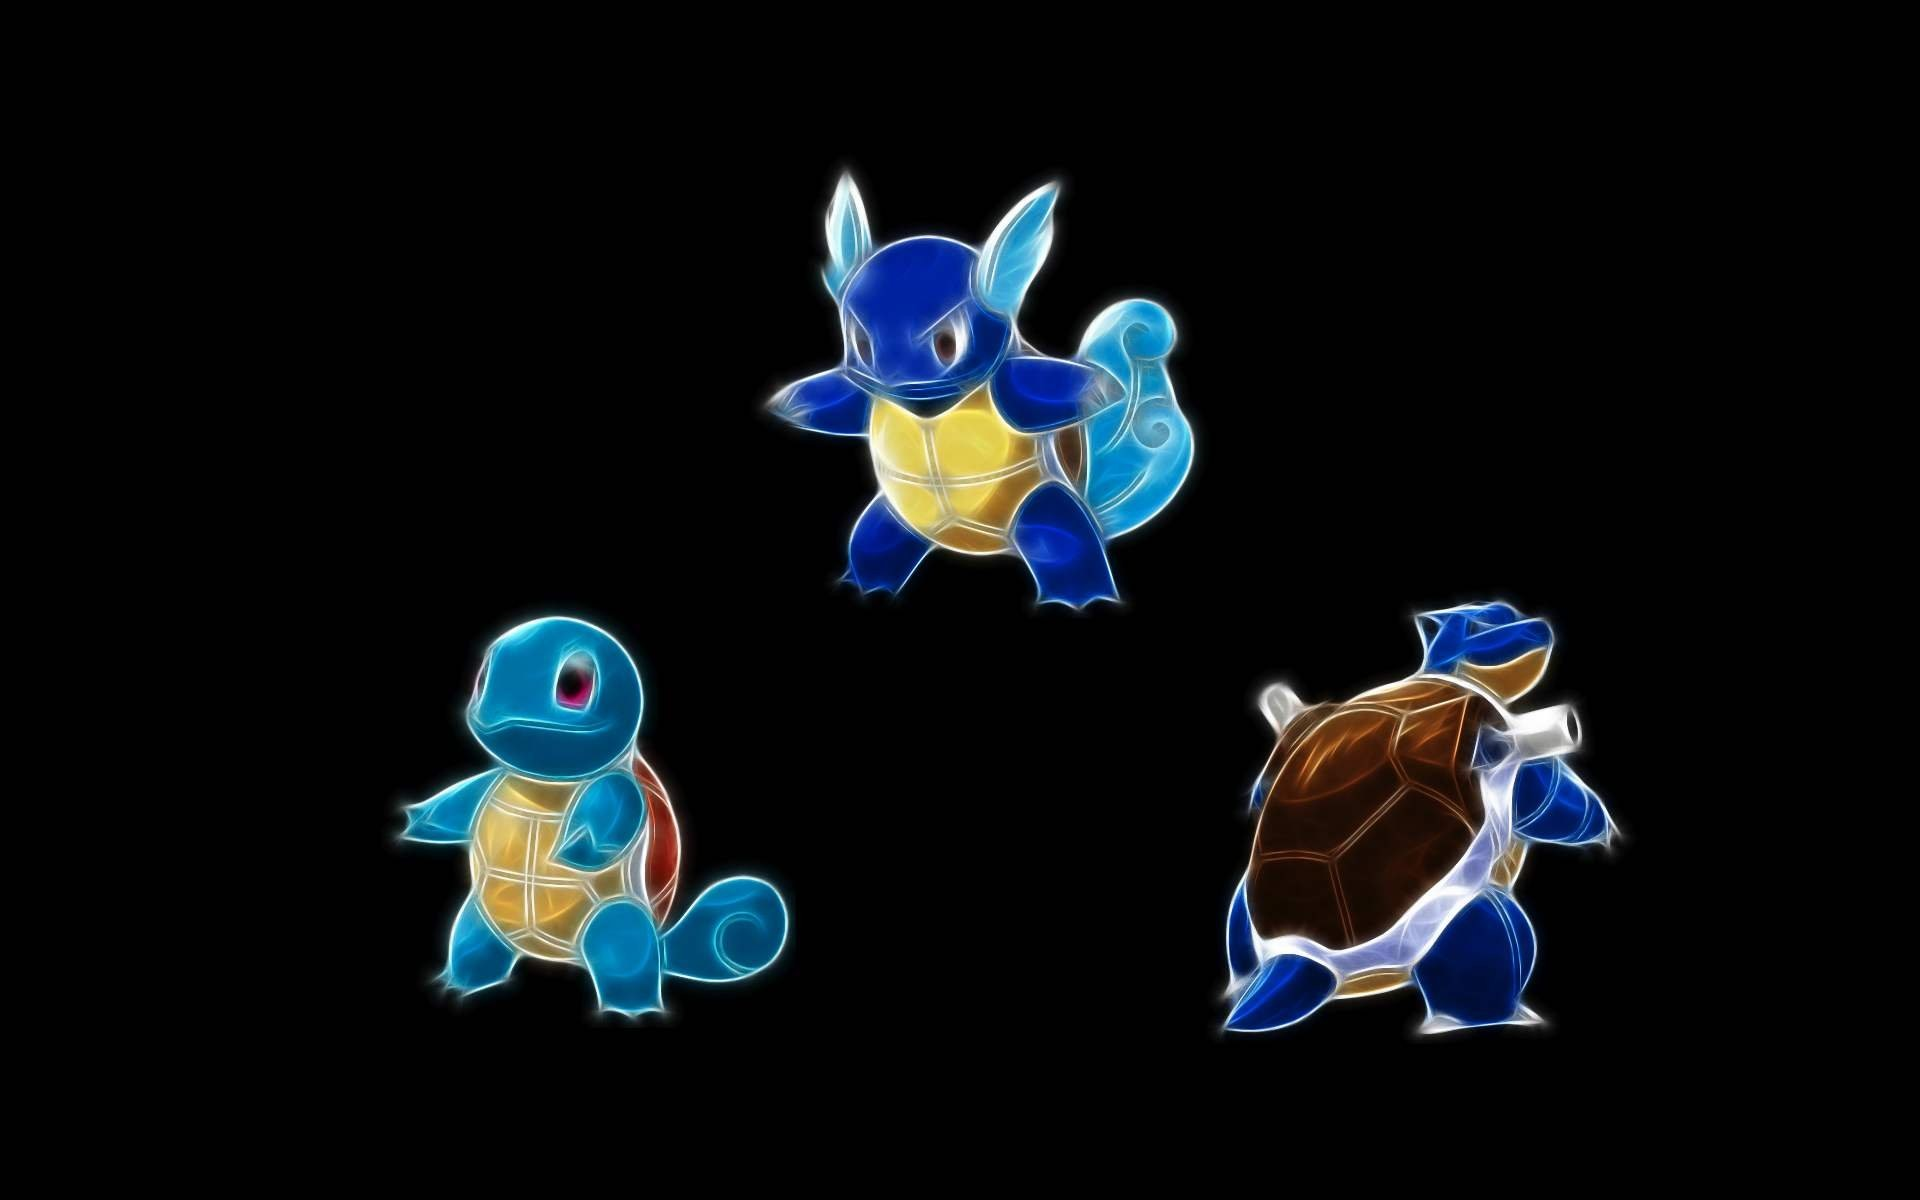 HD Pokemon Cartoons Download Squirtle Wallpapers Download Free 1920×1080  Squirtle Wallpapers (32 Wallpapers